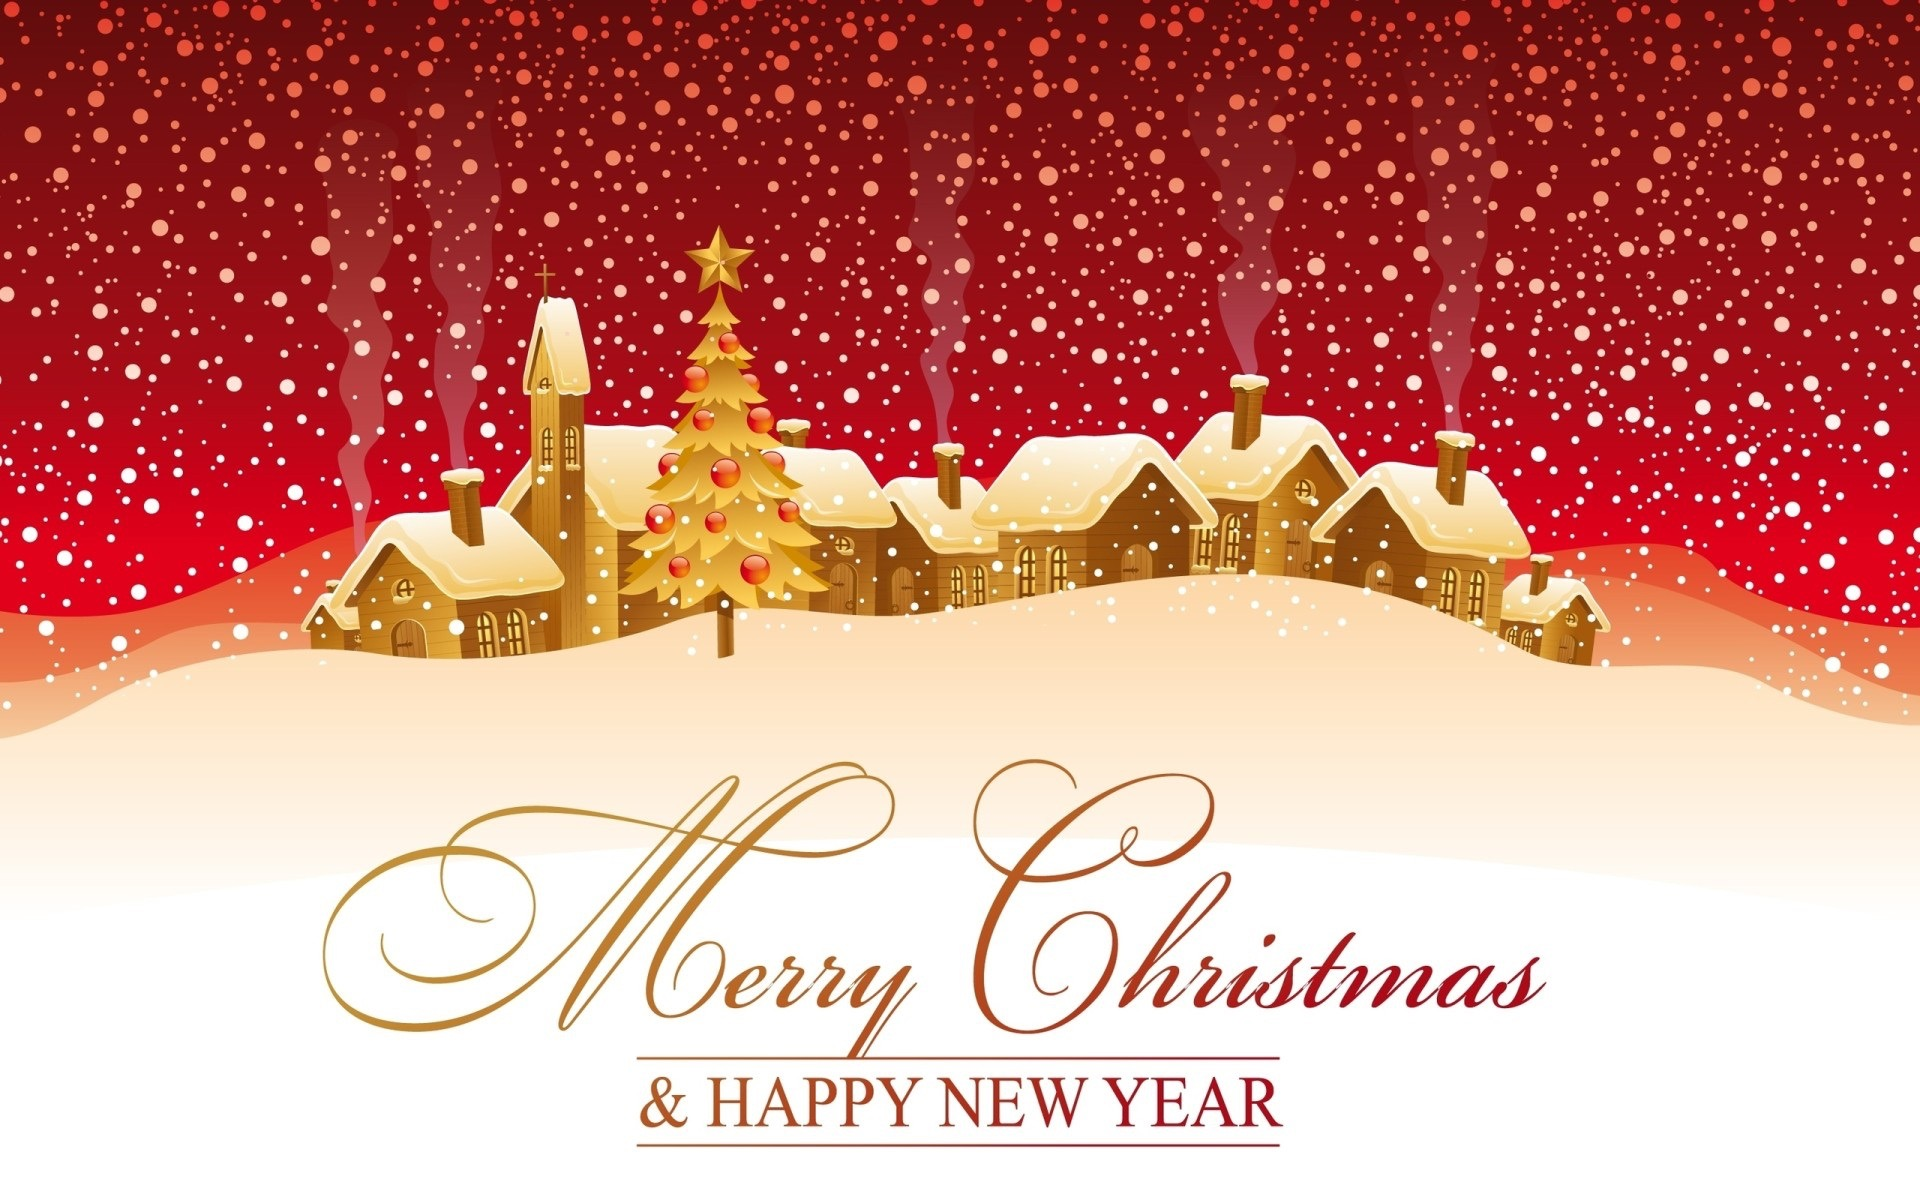 Merry Christmas And Happy New Year Chuckle Bunnies General Blog